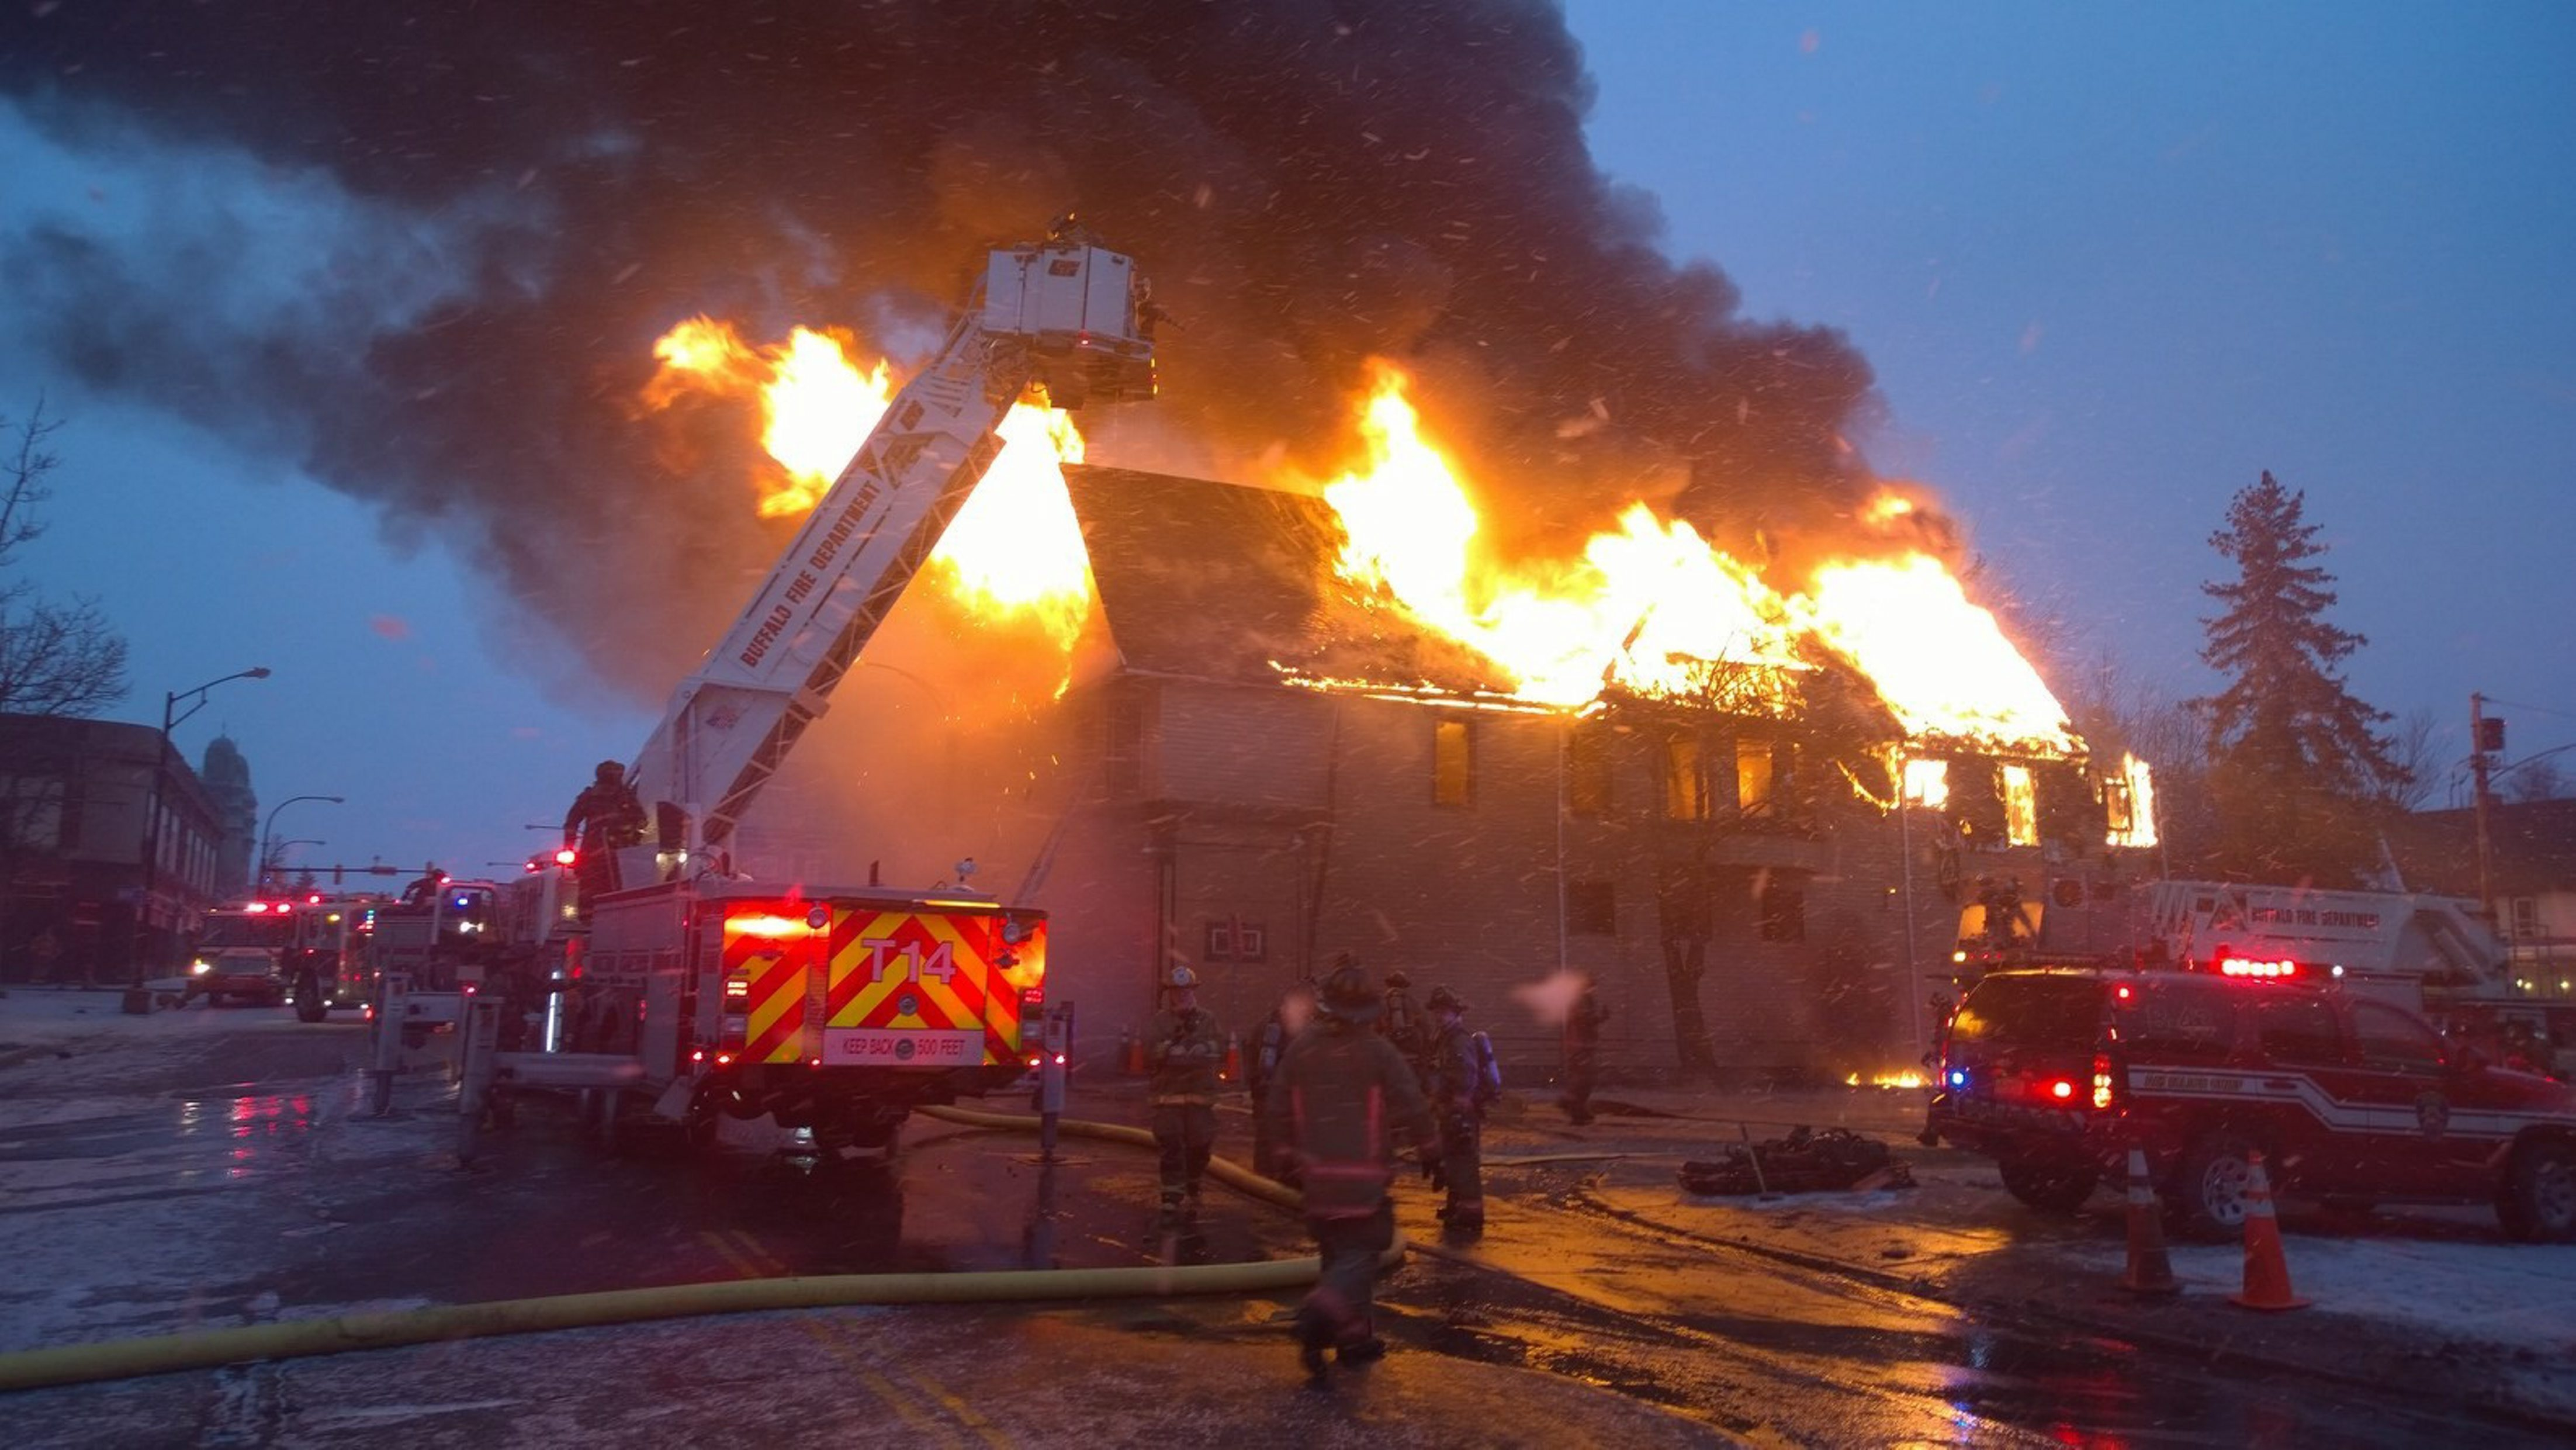 Buffalo firefighters try to douse flames from a blaze that engulfed this house at 1400 Fillmore Ave. and claimed one life just before 7 a.m. today.